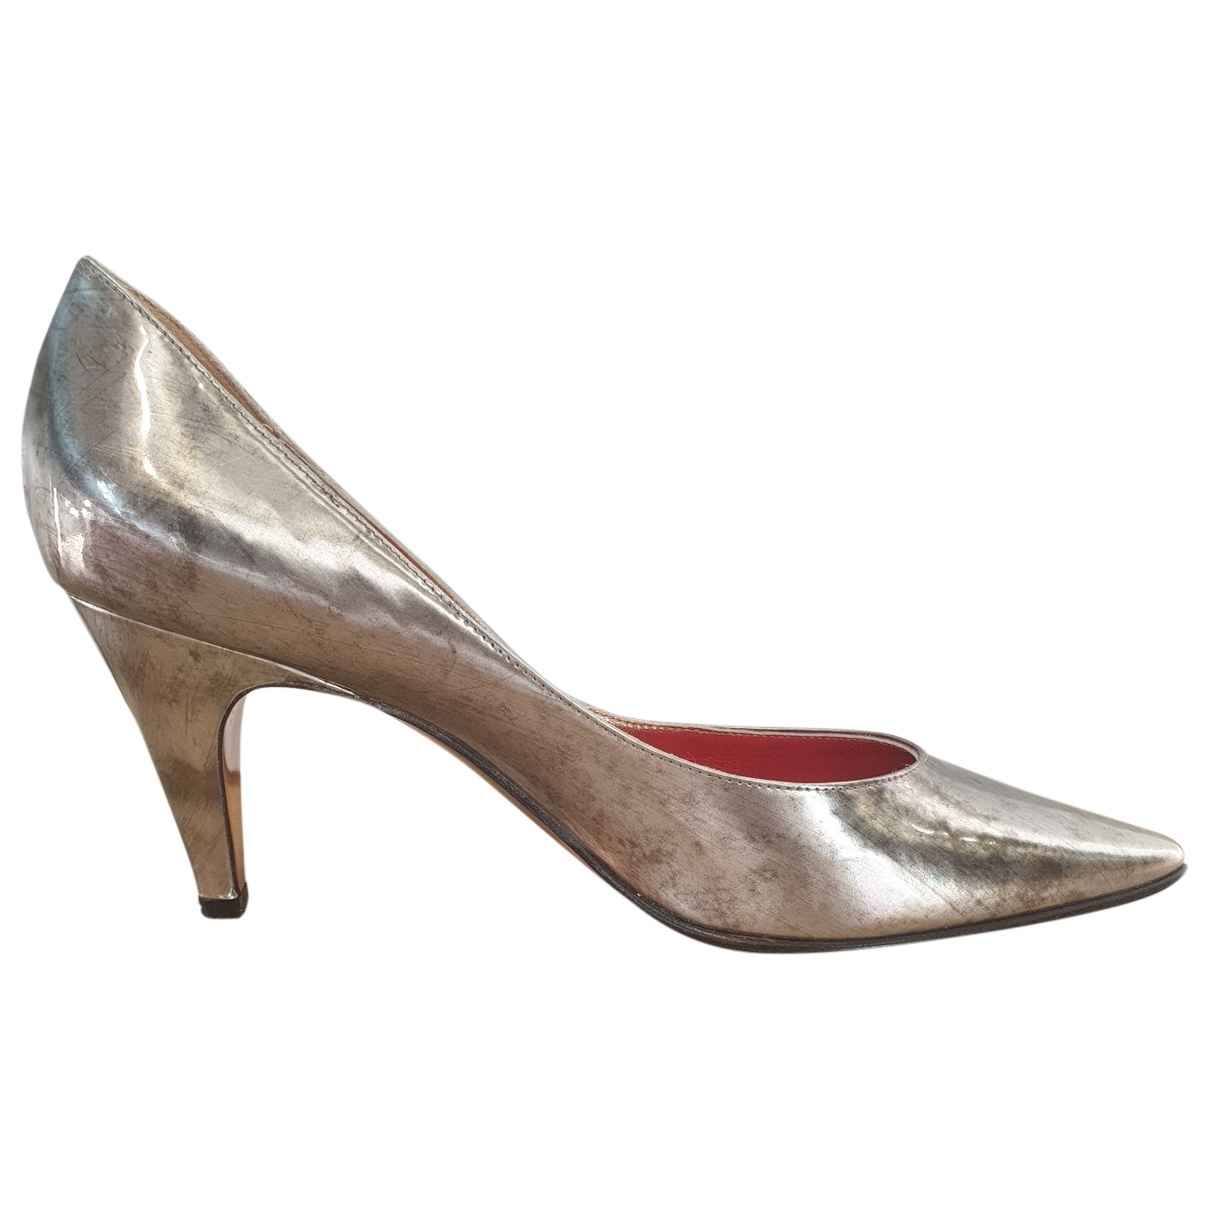 Christian Lacroix \N Silver Patent leather Heels for Women 38.5 EU